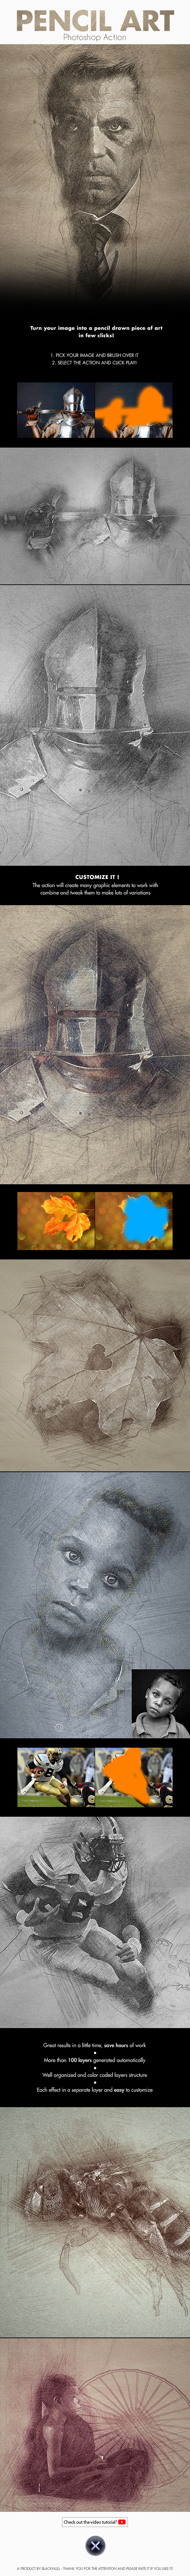 Pencil Art - Photoshop Action - Photo Effects Actions